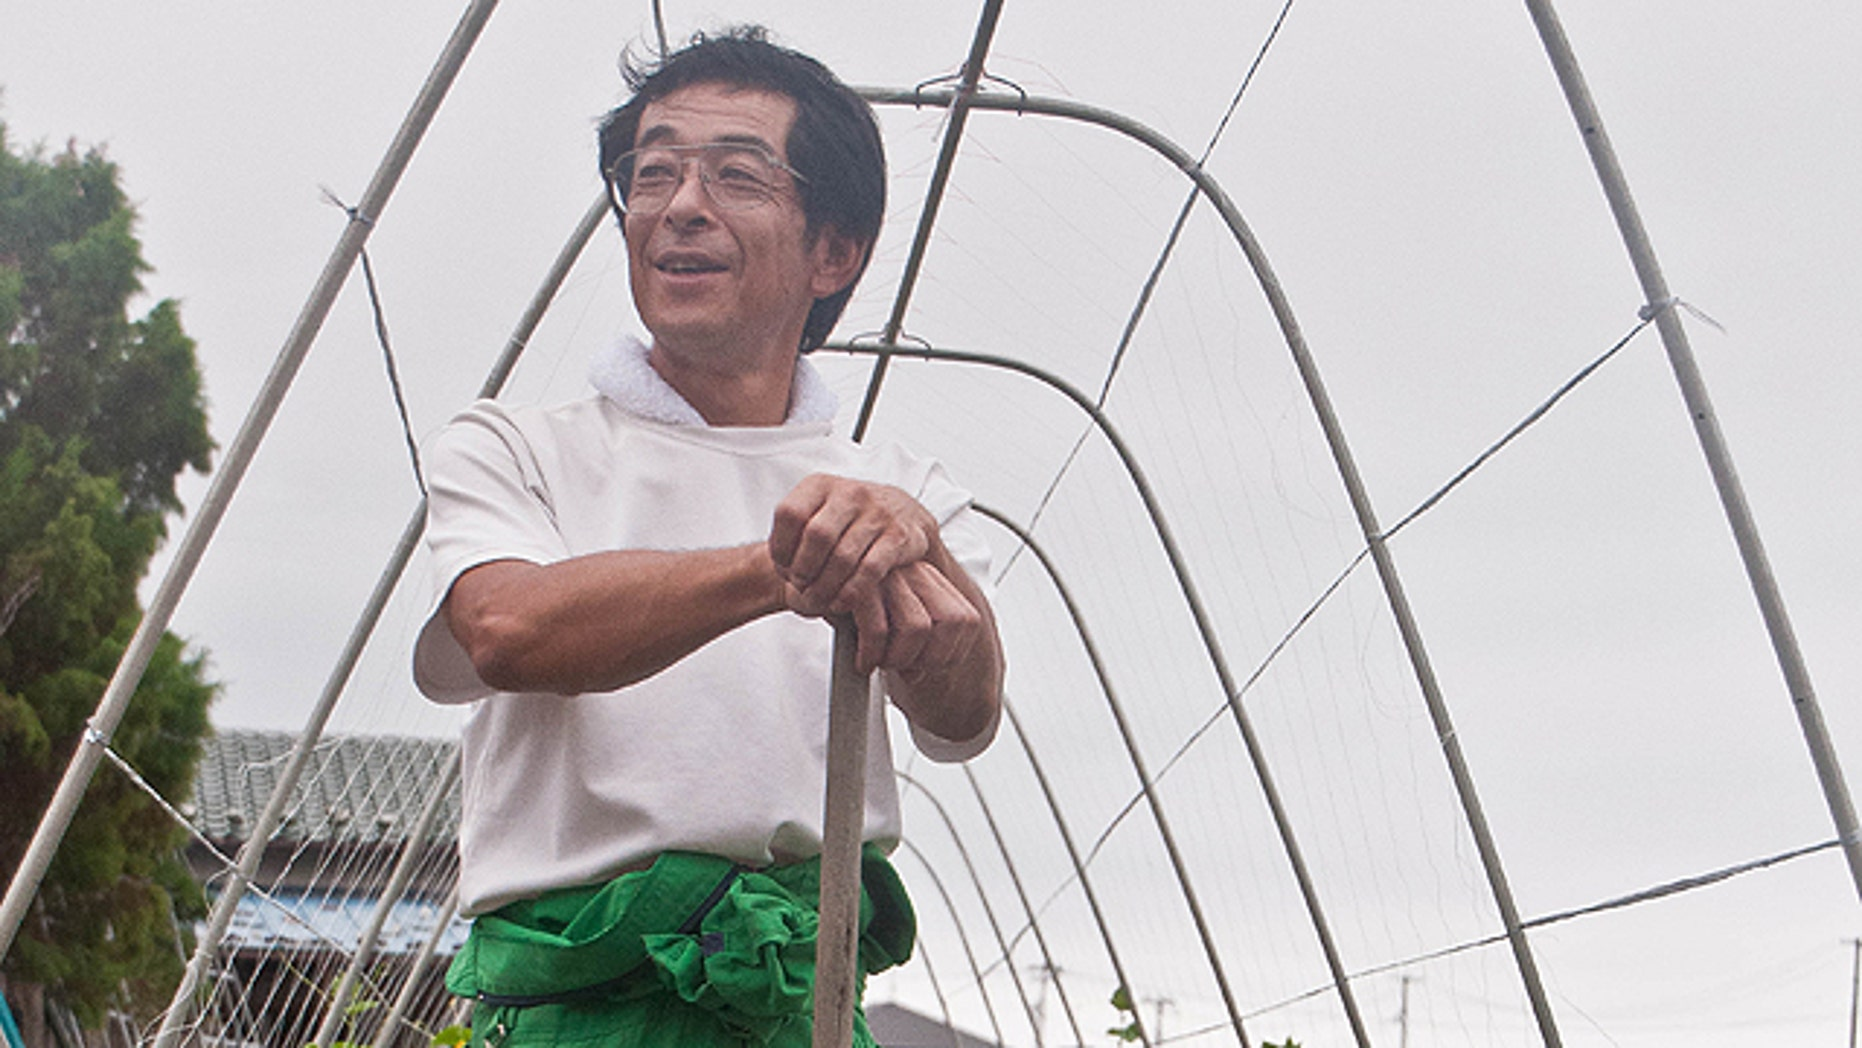 Like many local farmers who survived, Hirofumi Ouchi was told that if he left his land alone the government would fix it within a year, and provide insurance money.